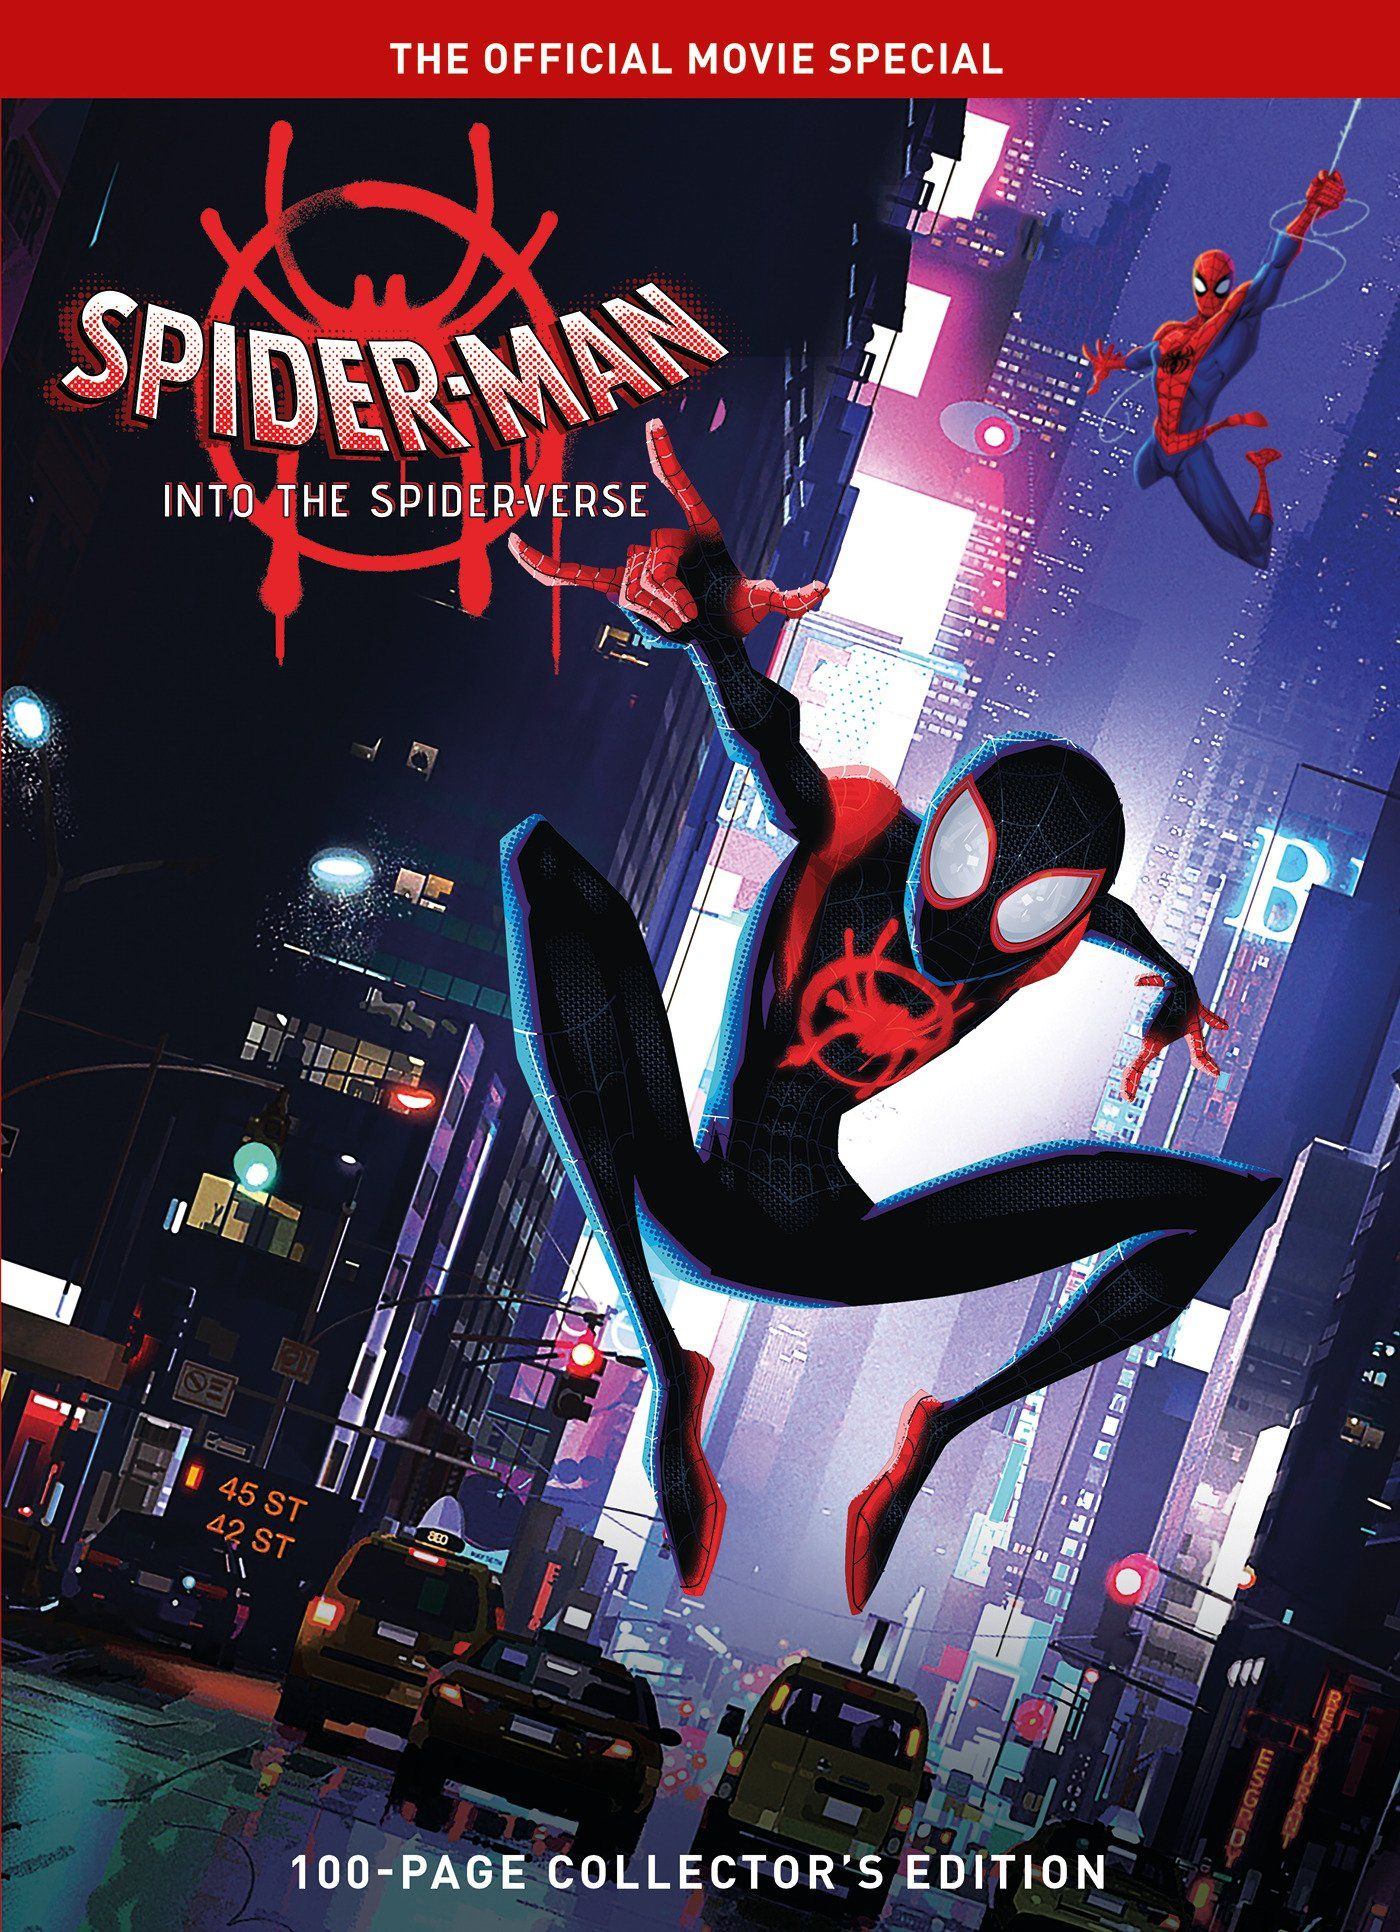 Spider Man Into The Spider Verse Streaming : spider, verse, streaming, Regarder-Vf, [720p]™, [Spider-Man:, Spider-Verse], Streaming, #filmmaking, #spiderman